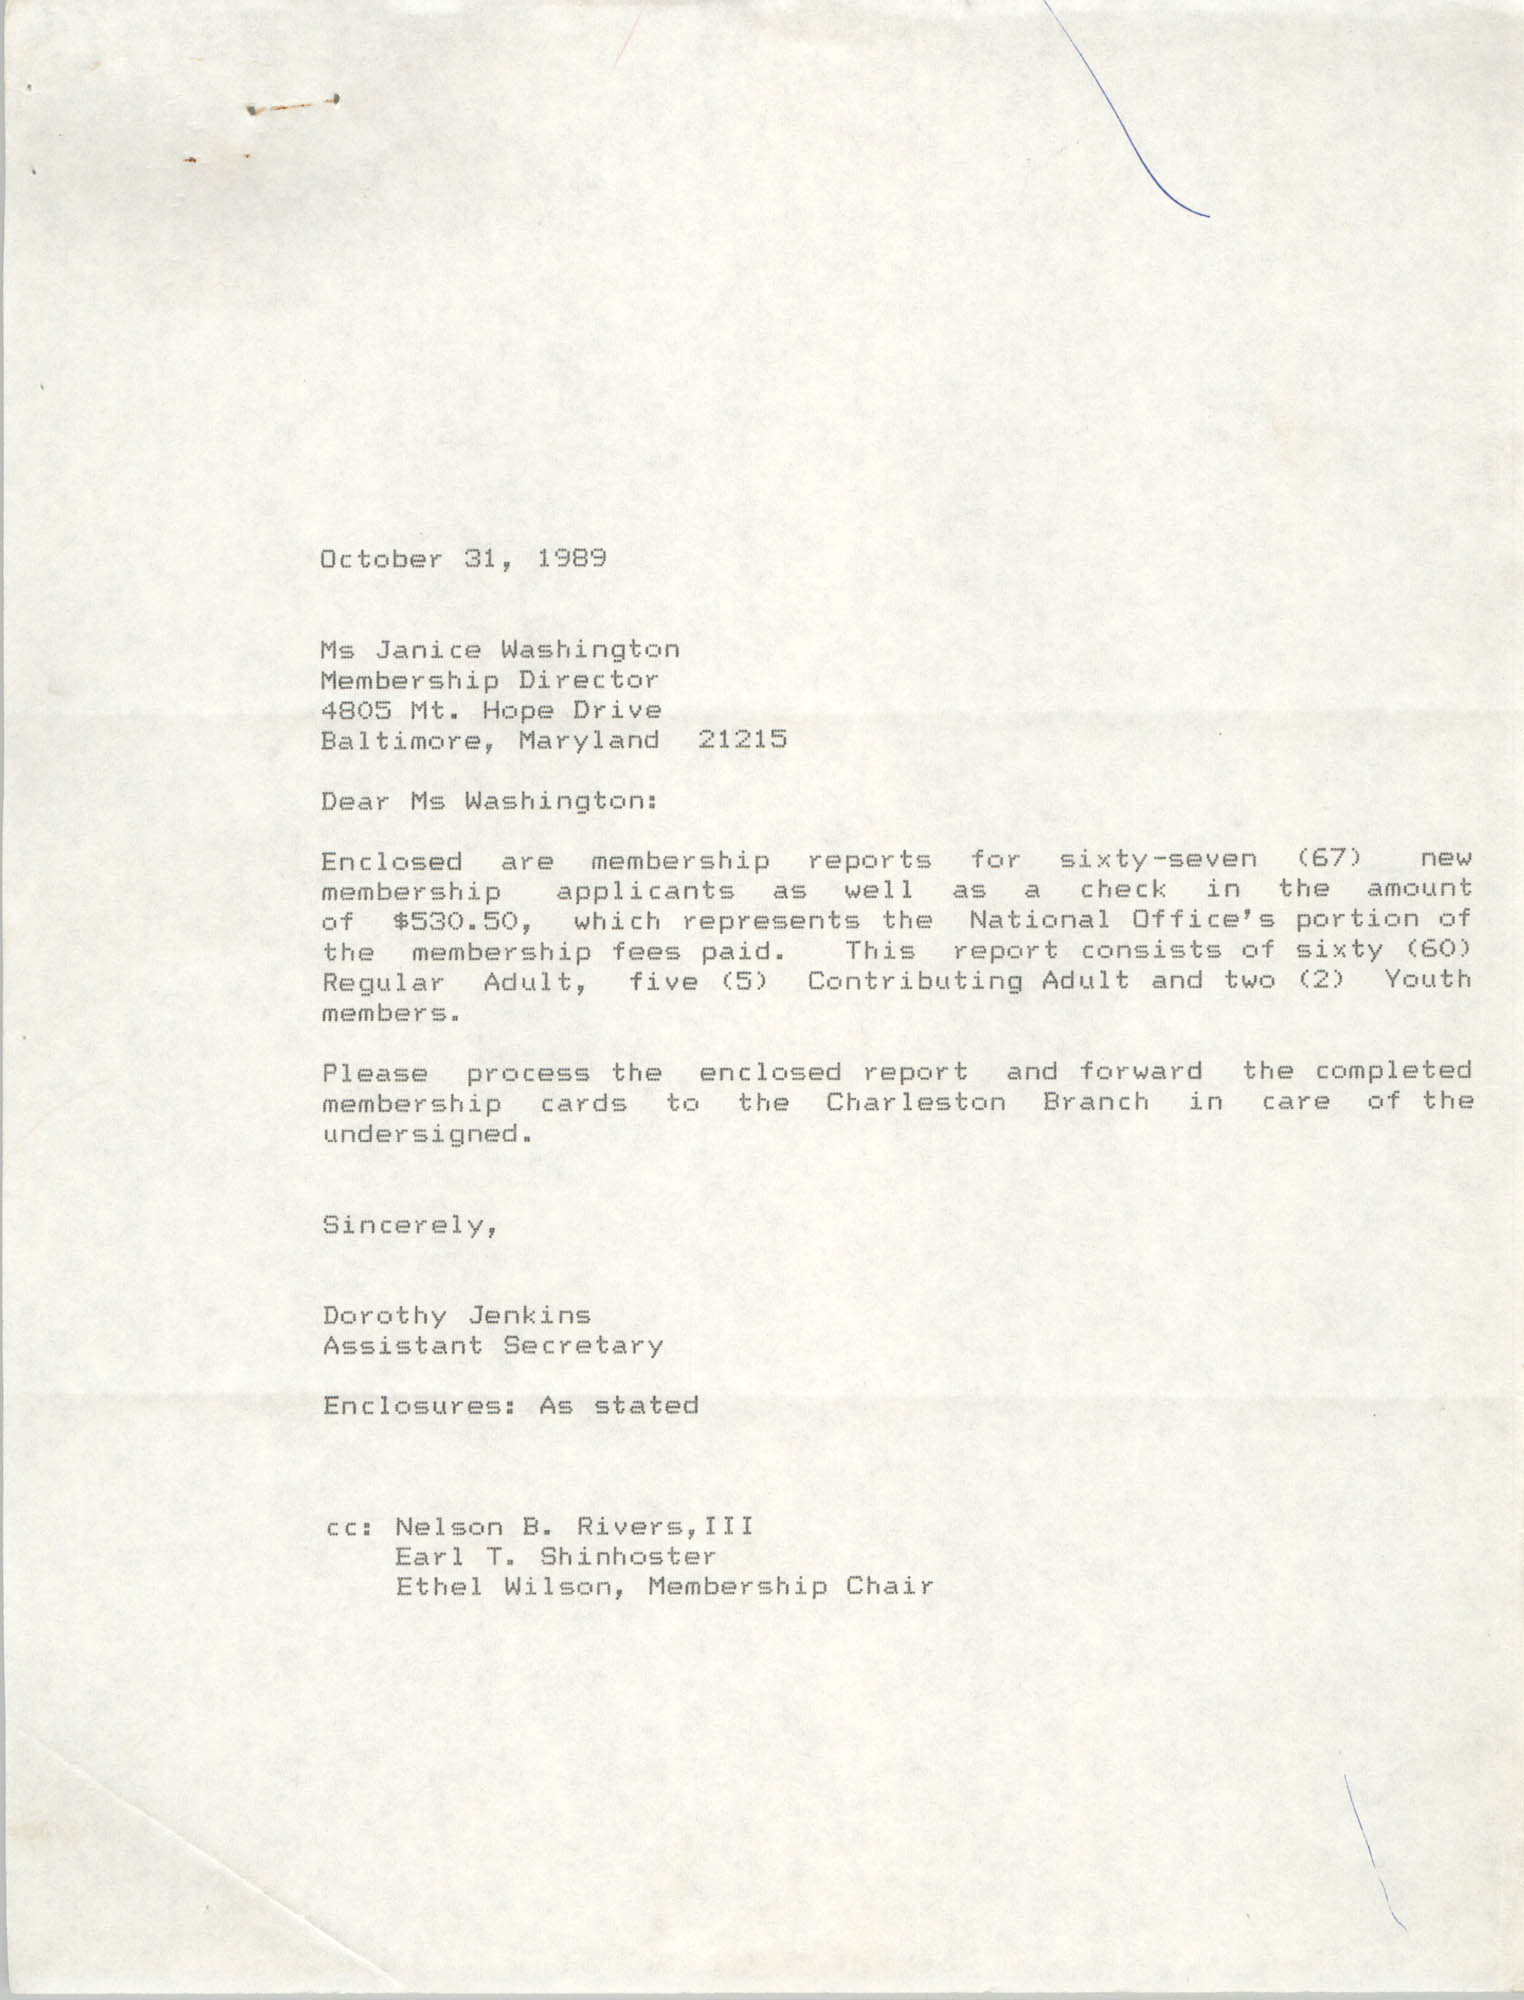 Letter from Dorothy Jenkins to Janice Washington, NAACP, October 31, 1989